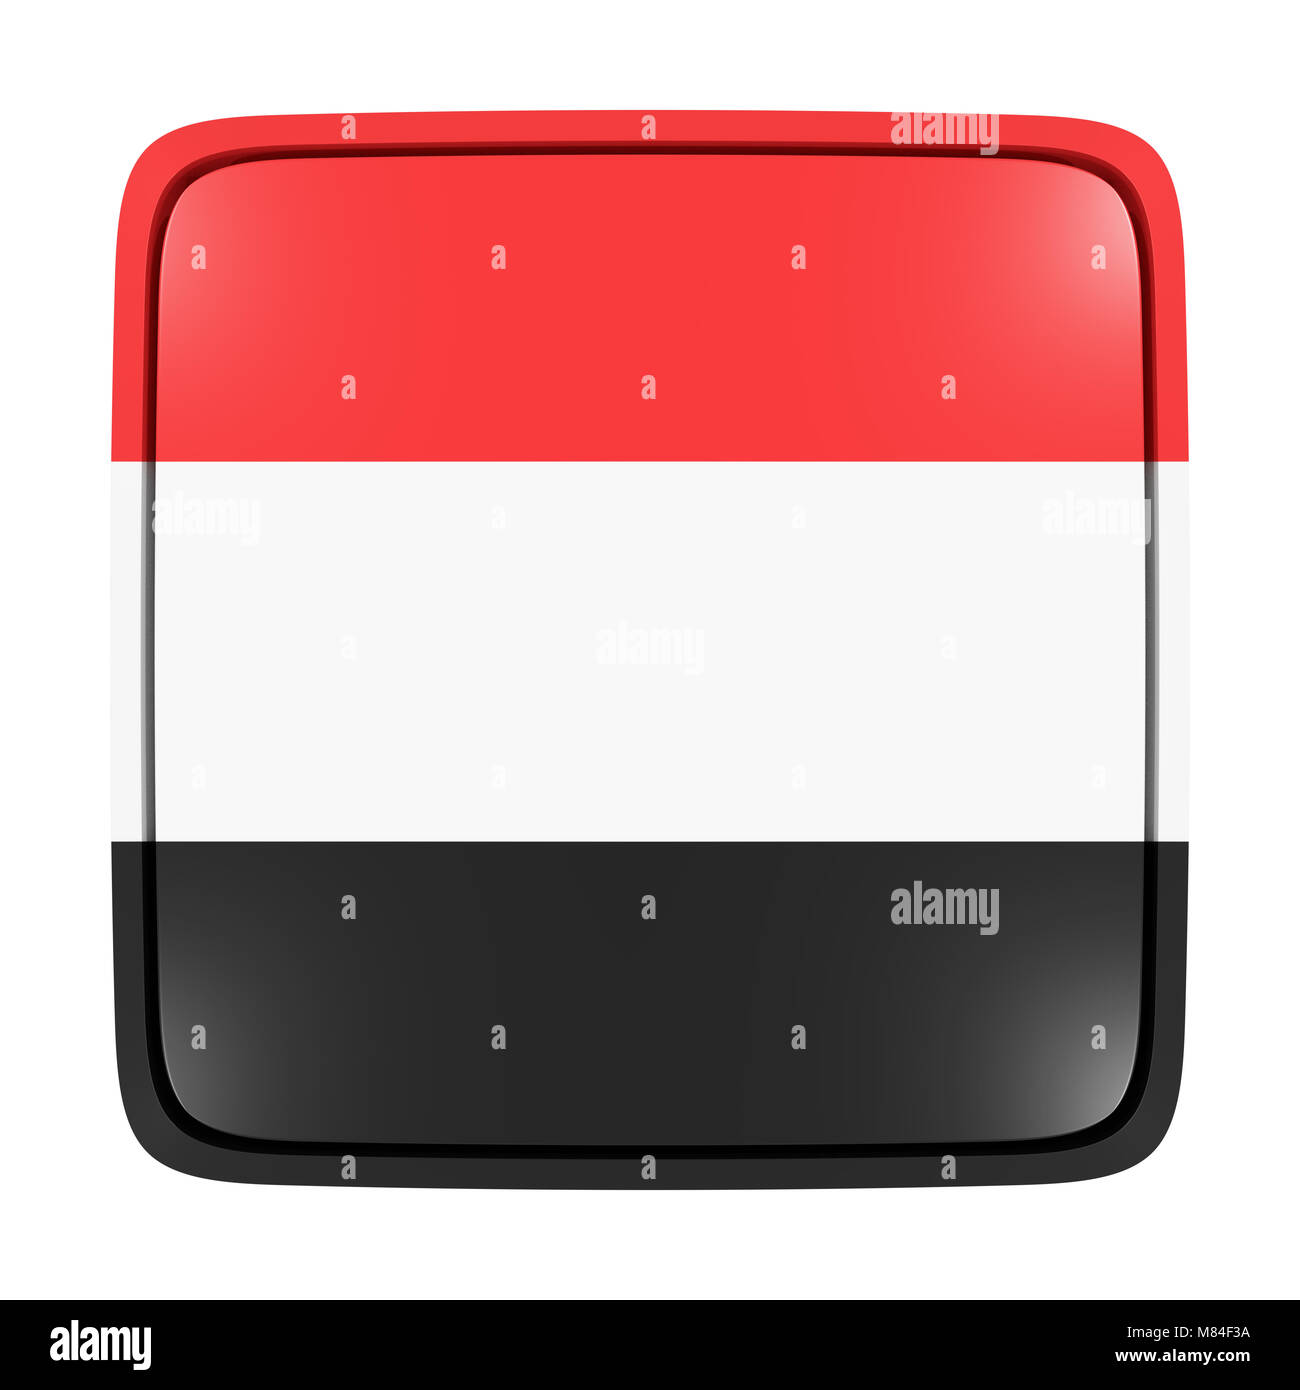 3d rendering of a Yemen flag icon. Isolated on white background. - Stock Image